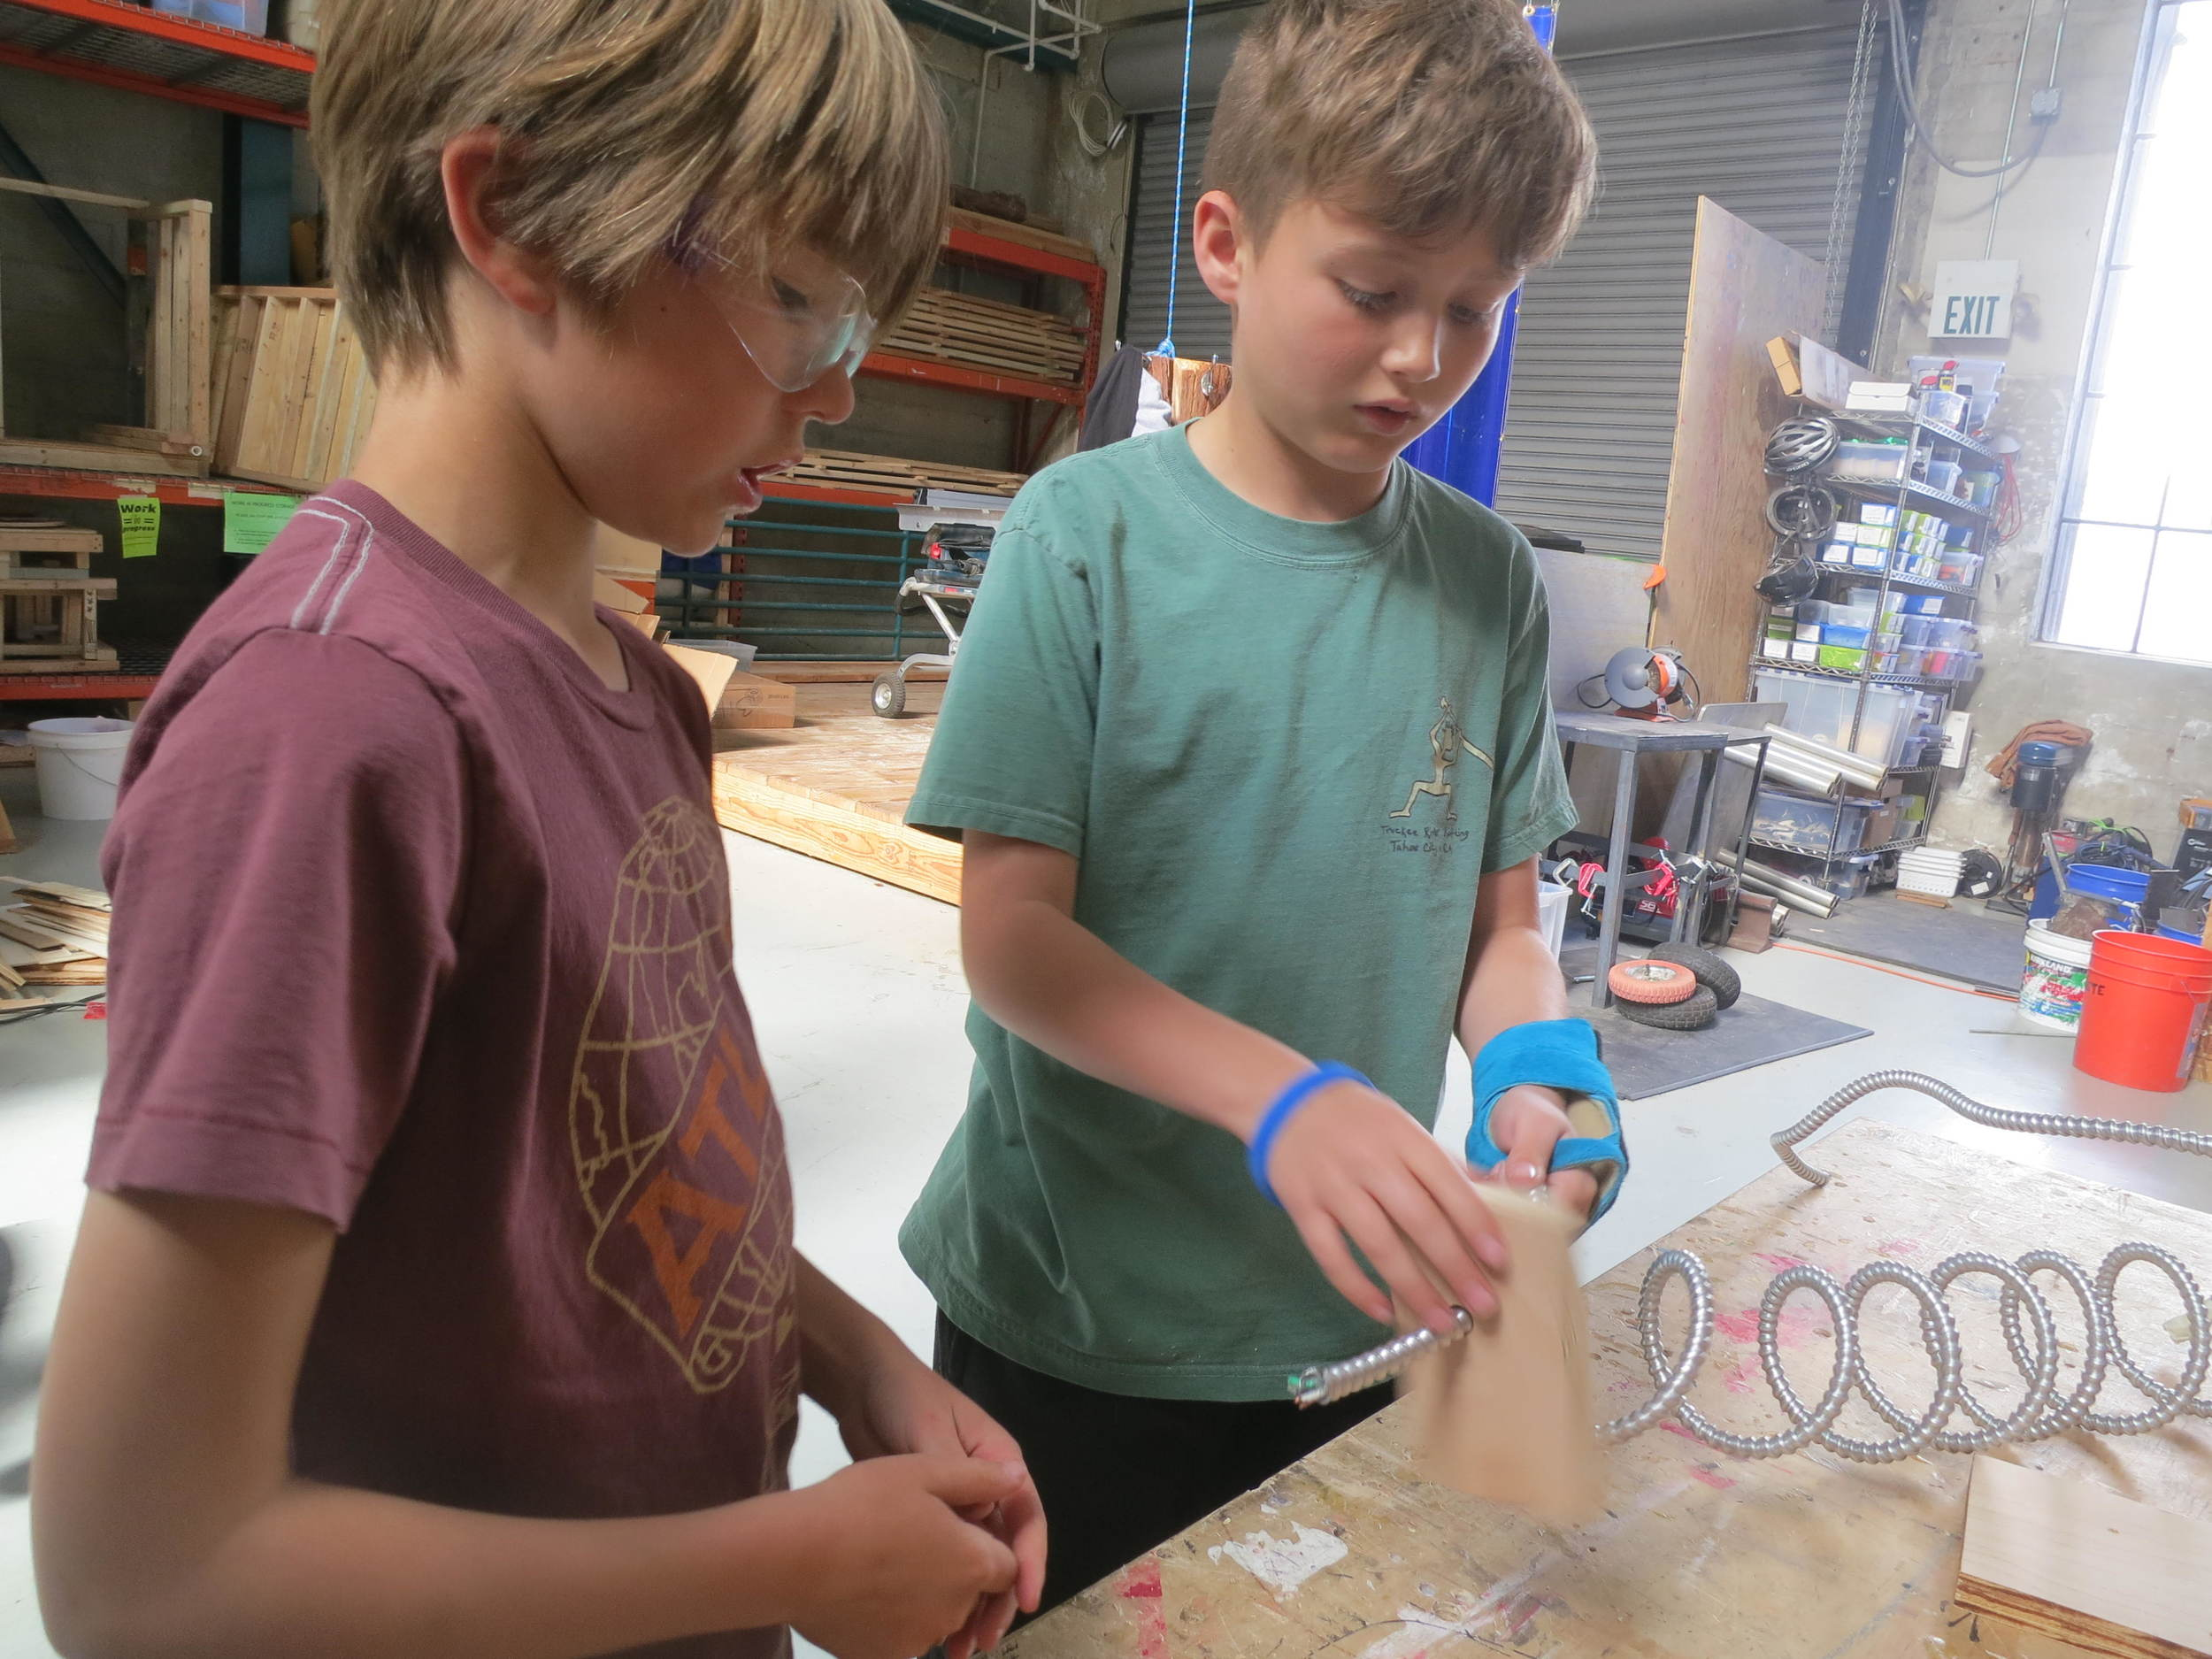 Henri and Ethan try using the end of the coil as a handle to turn the coil inside the box.